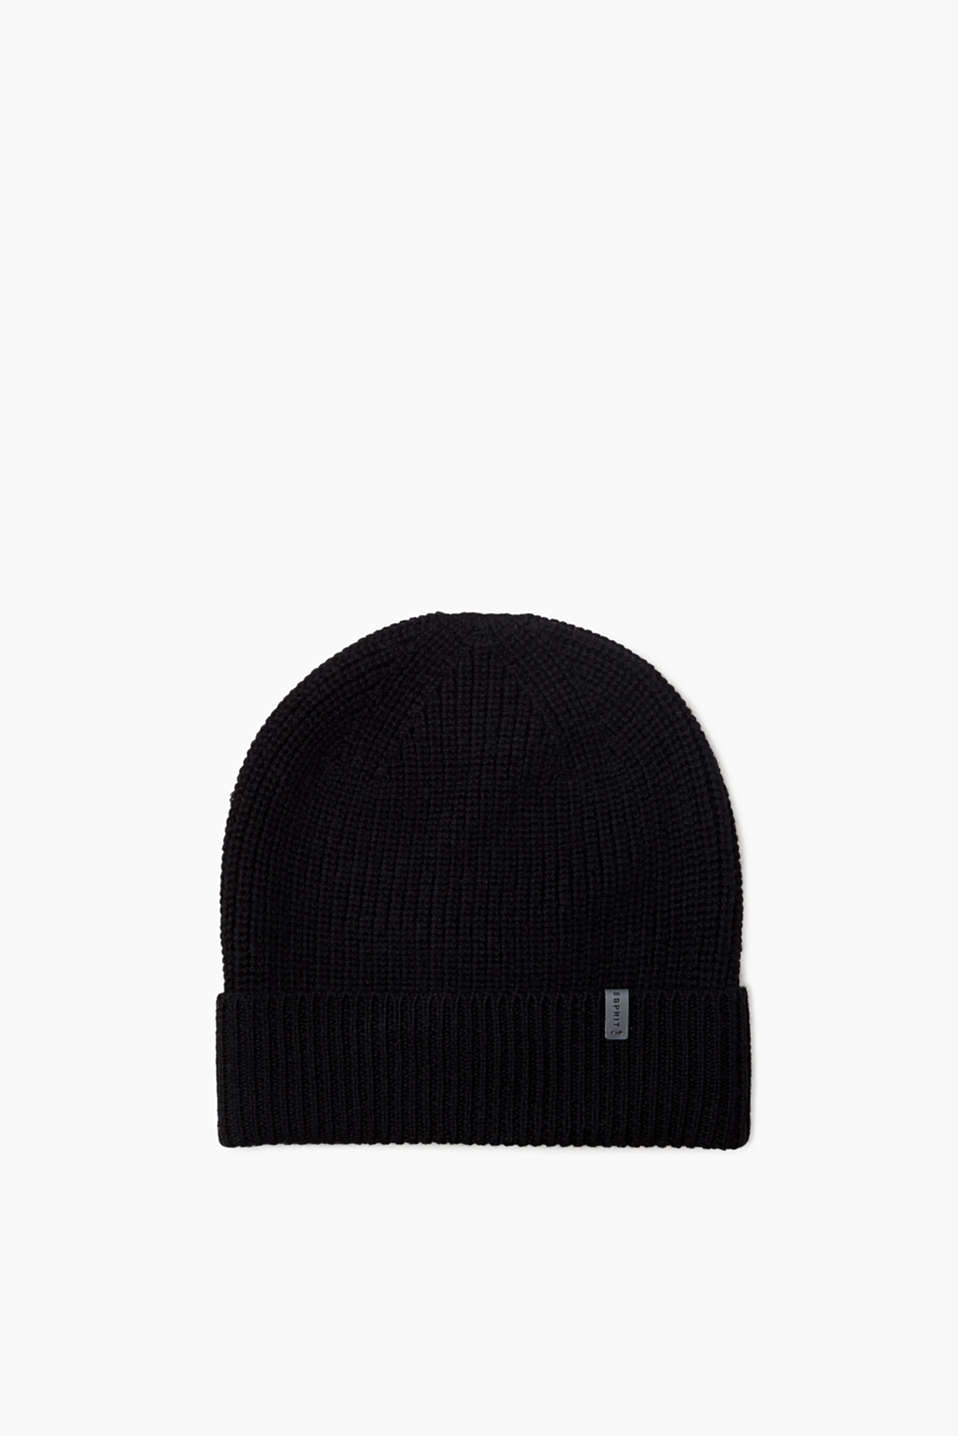 This rib knit beanie made of pure wool with a turn-back cuff and logo appliqué is a soft, elegant basic piece for cold days.